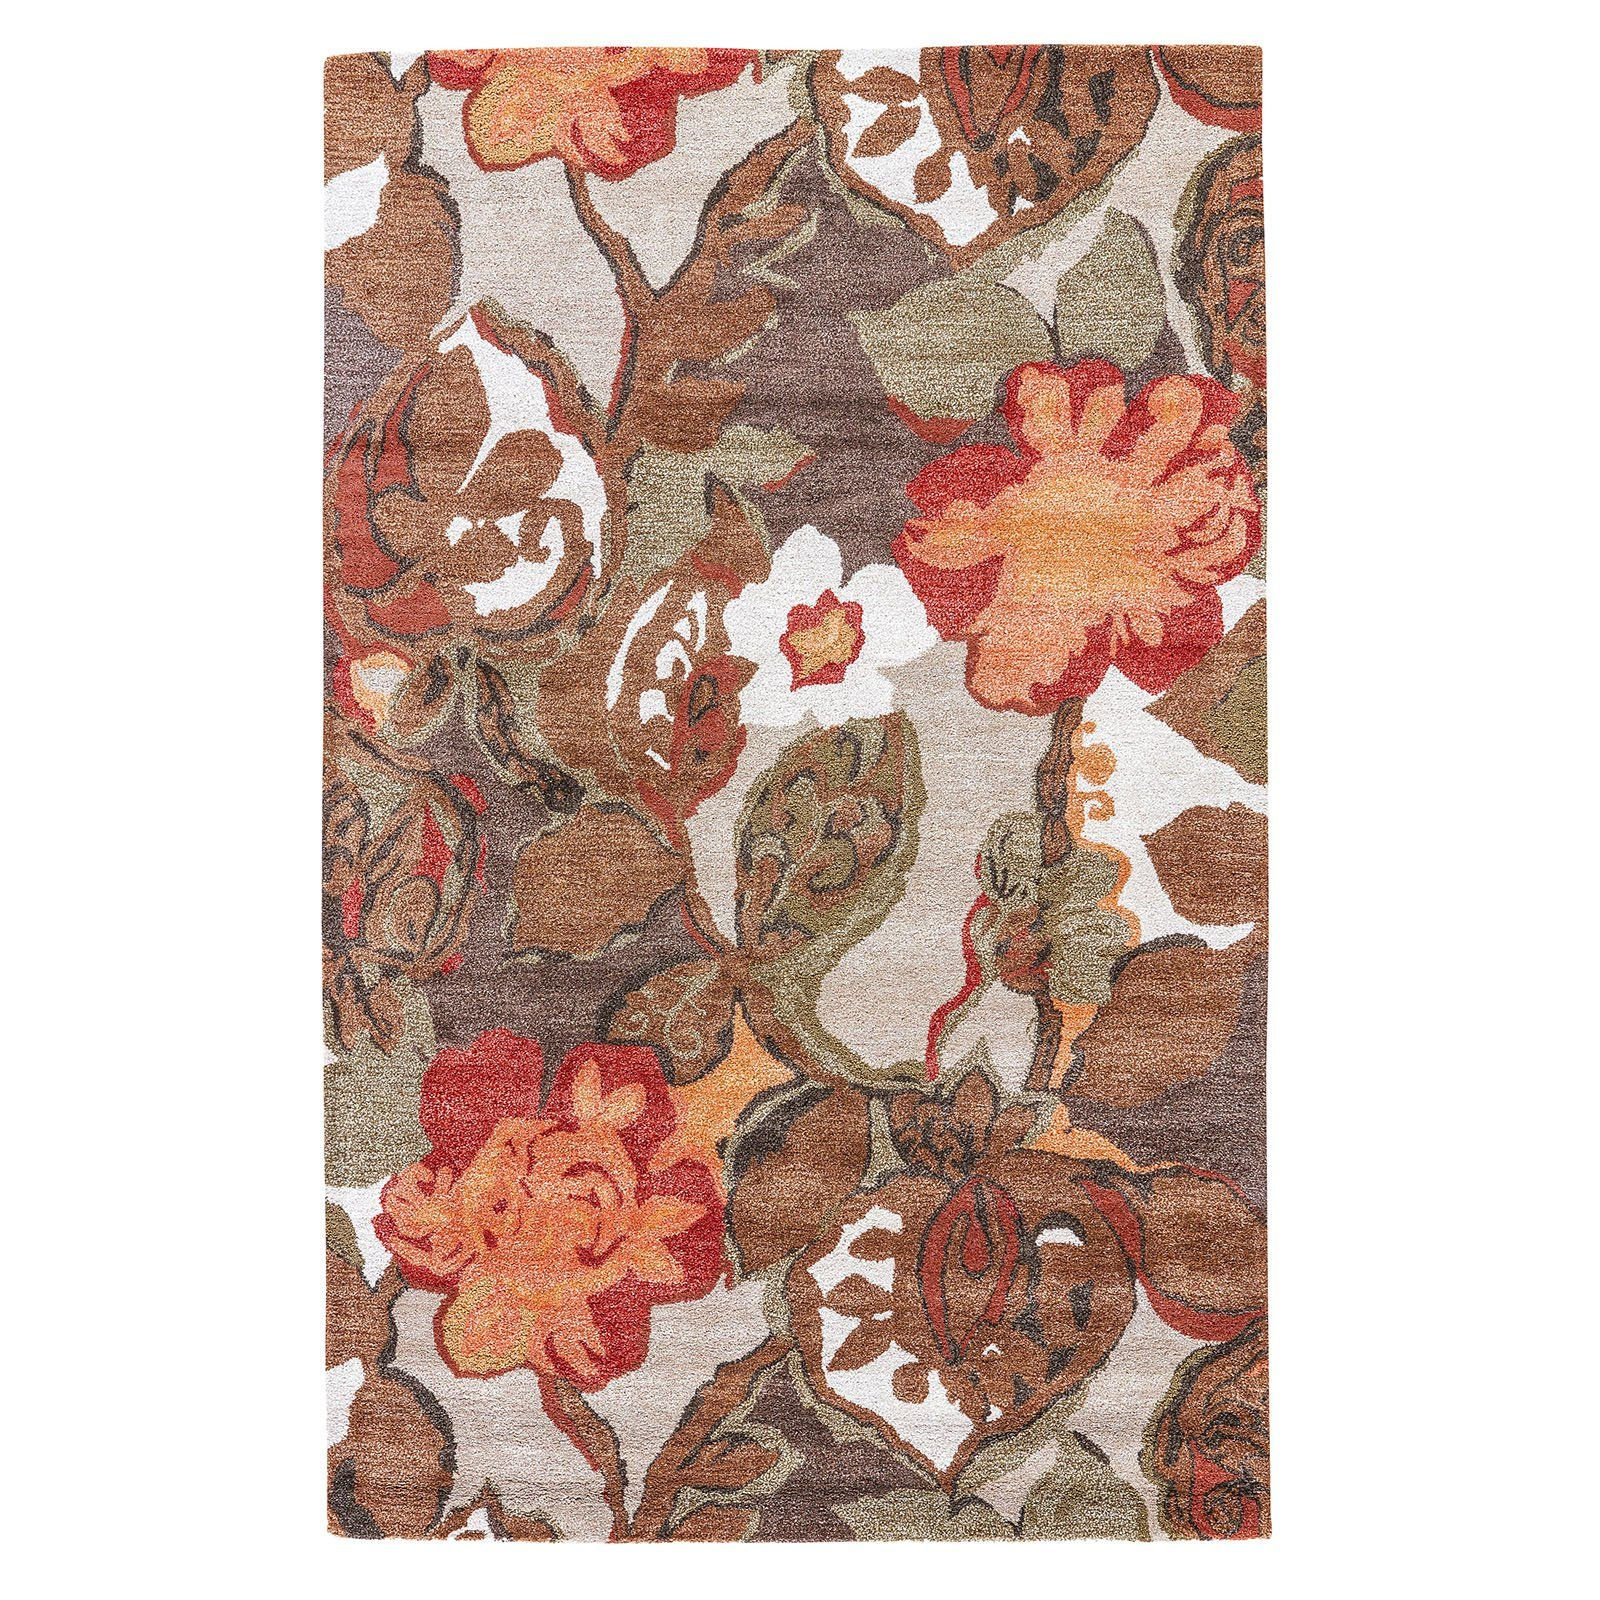 Jaipur Rugs Fall Floral And Leaves Indoor Area Rug Floral Area